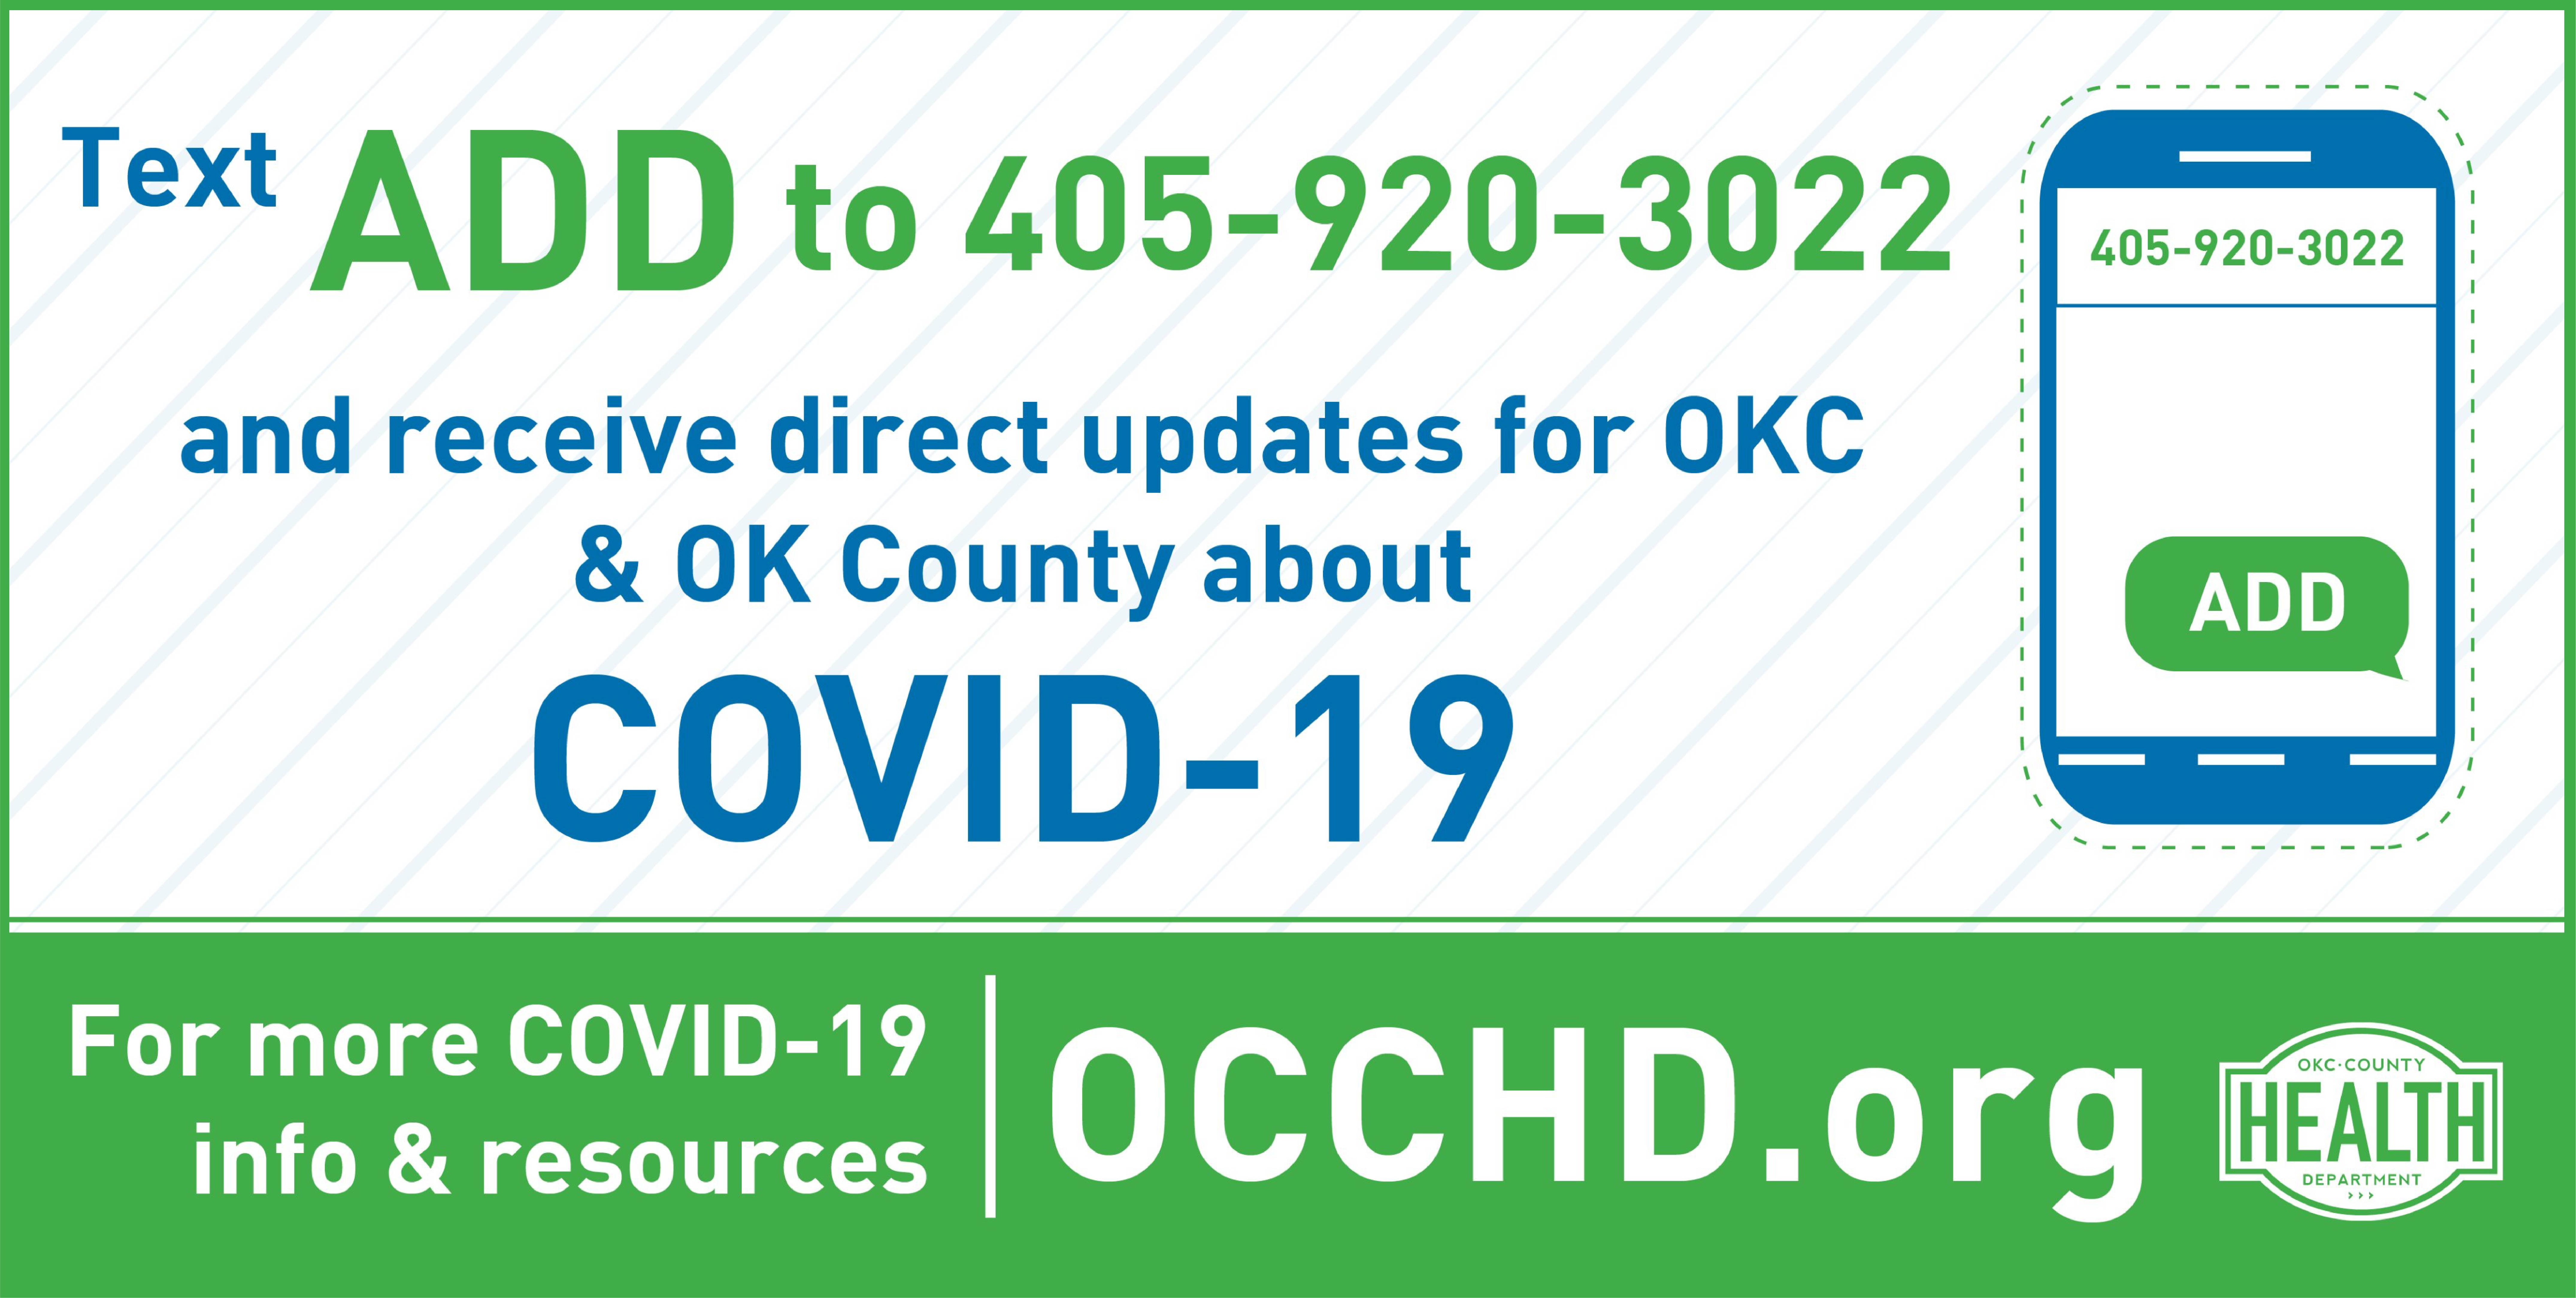 Text 'ADD' to 405-920-3022 to receive direct updates for OKC and OK County about COVID-19